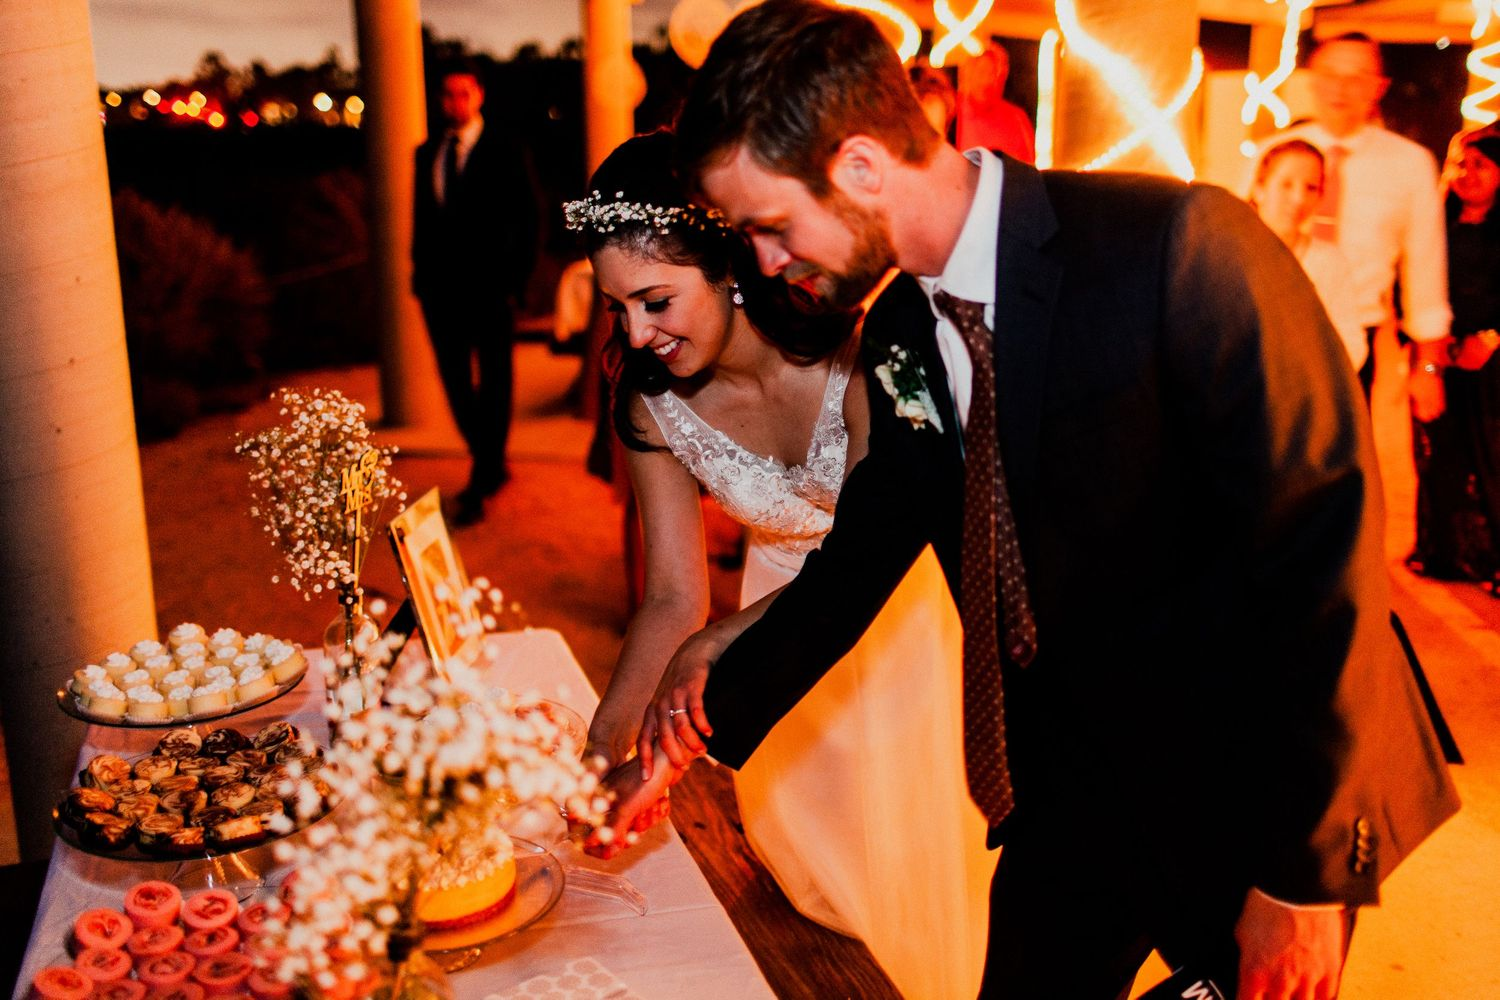 bride and groom cut cake after dancing